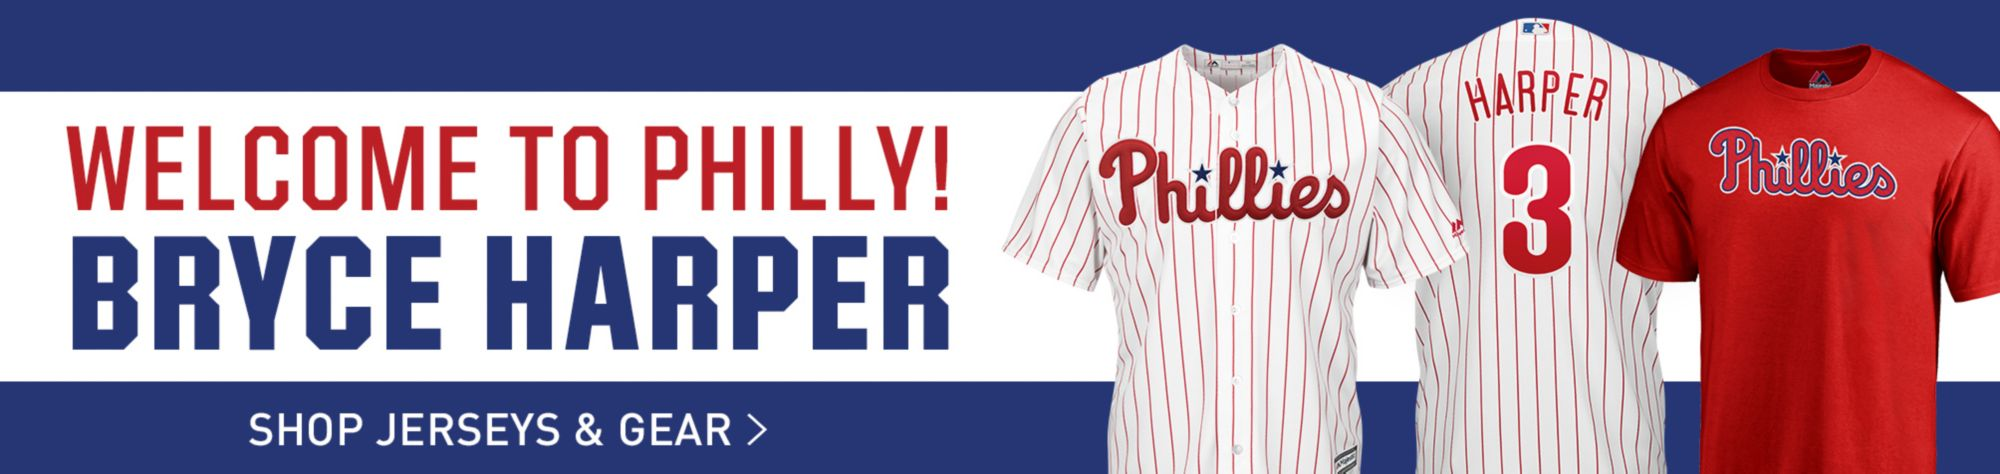 66c7e93a343 Philadelphia Phillies Apparel & Gear | MLB Fan Shop at DICK'S